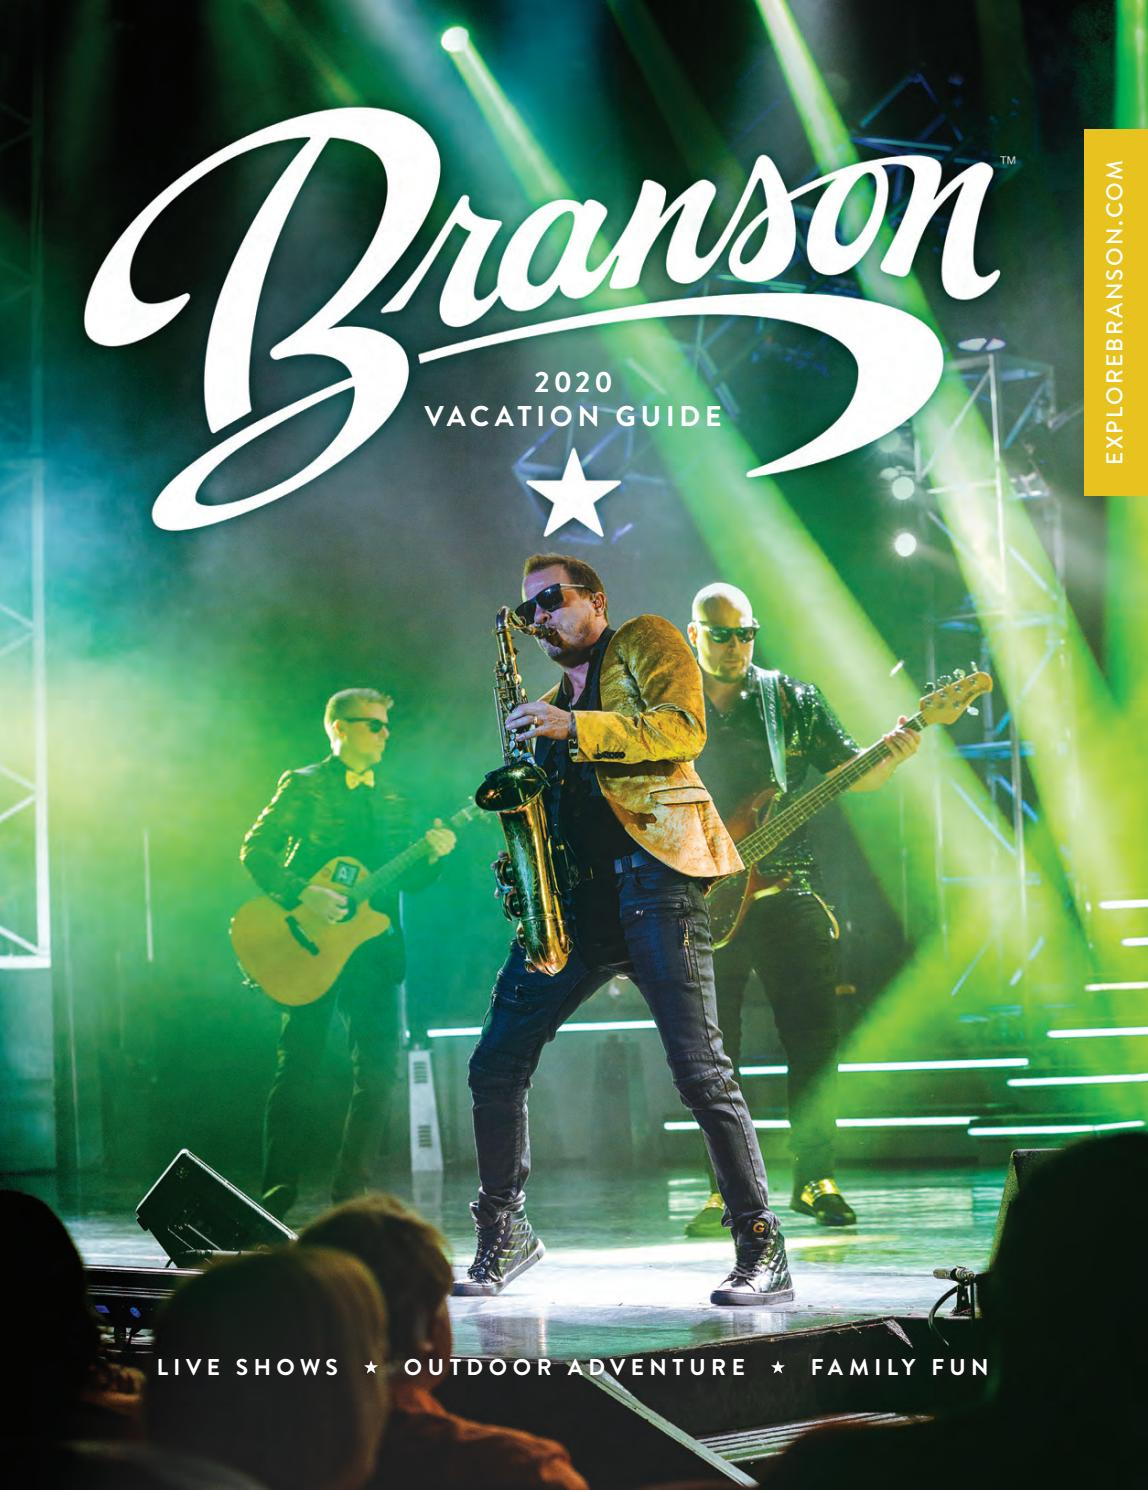 Branson Christmas Bus Tours From St Cloud Mn Leaving November 26 2020 2020 Branson Vacation Guide by Branson Convention and Visitors